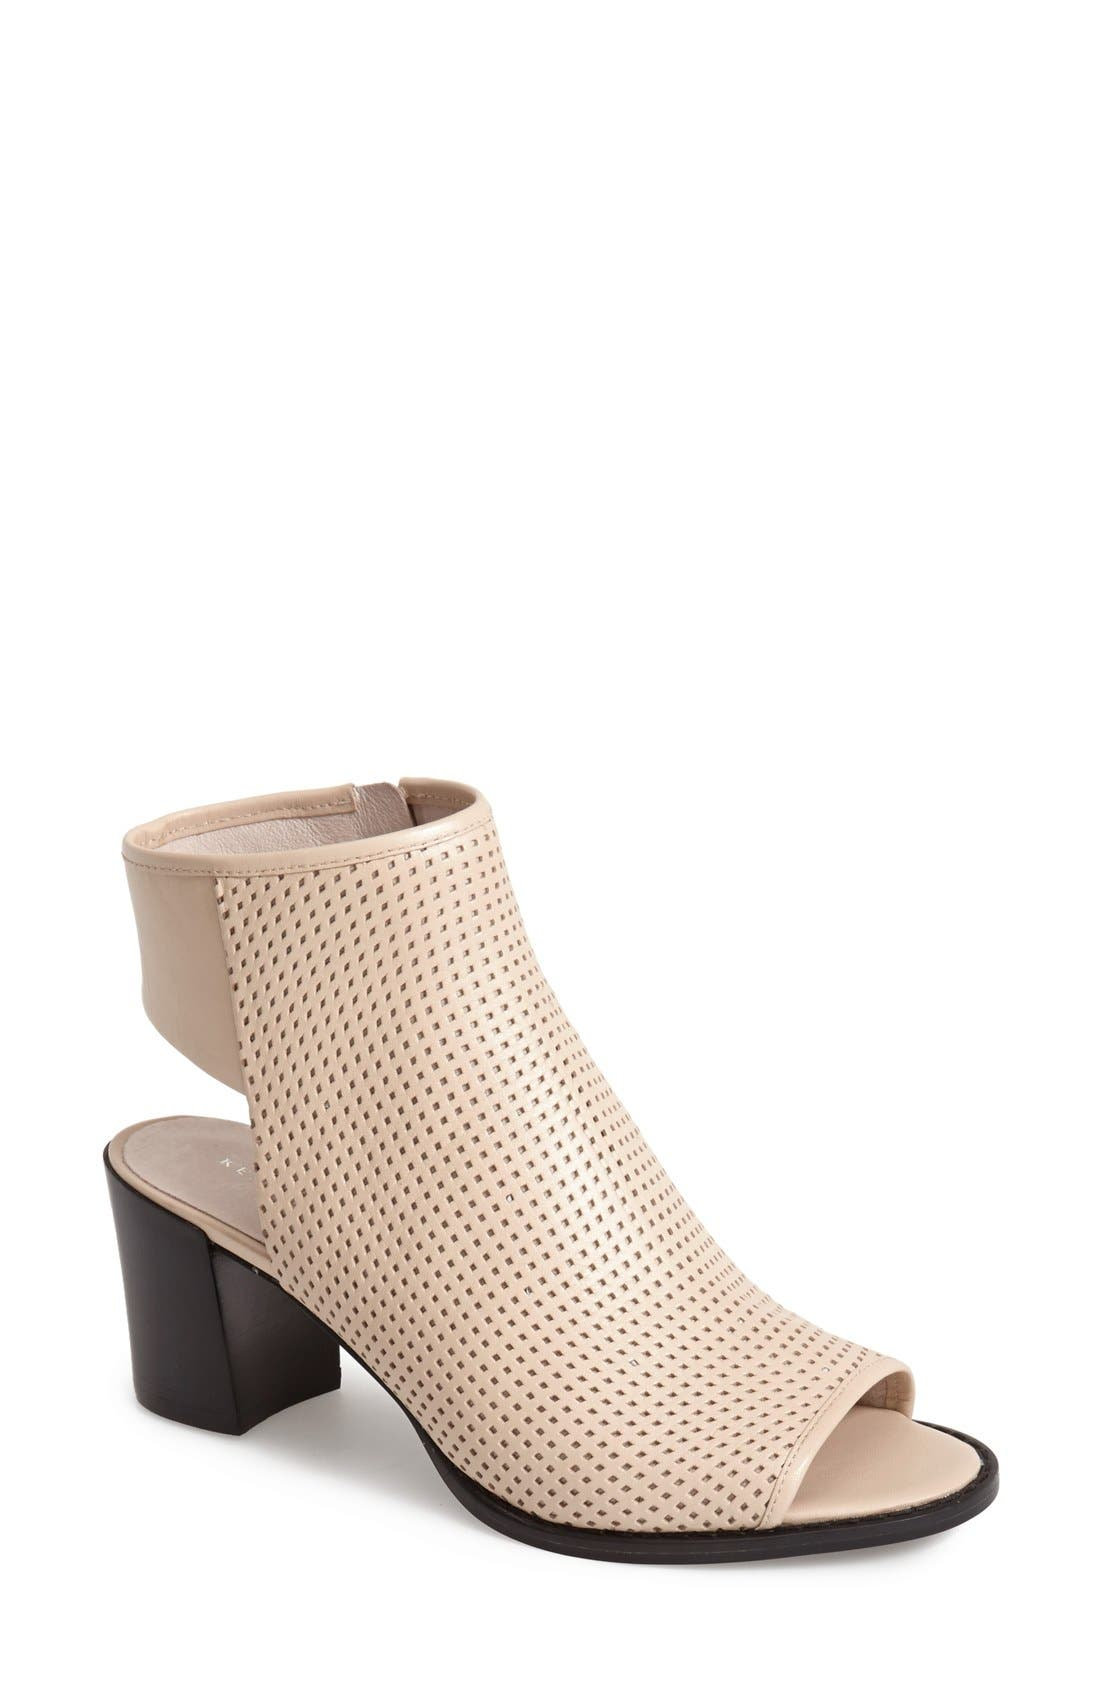 Alternate Image 1 Selected - Kenneth Cole New York 'Shay' Open Toe Perforated Leather Bootie (Women)